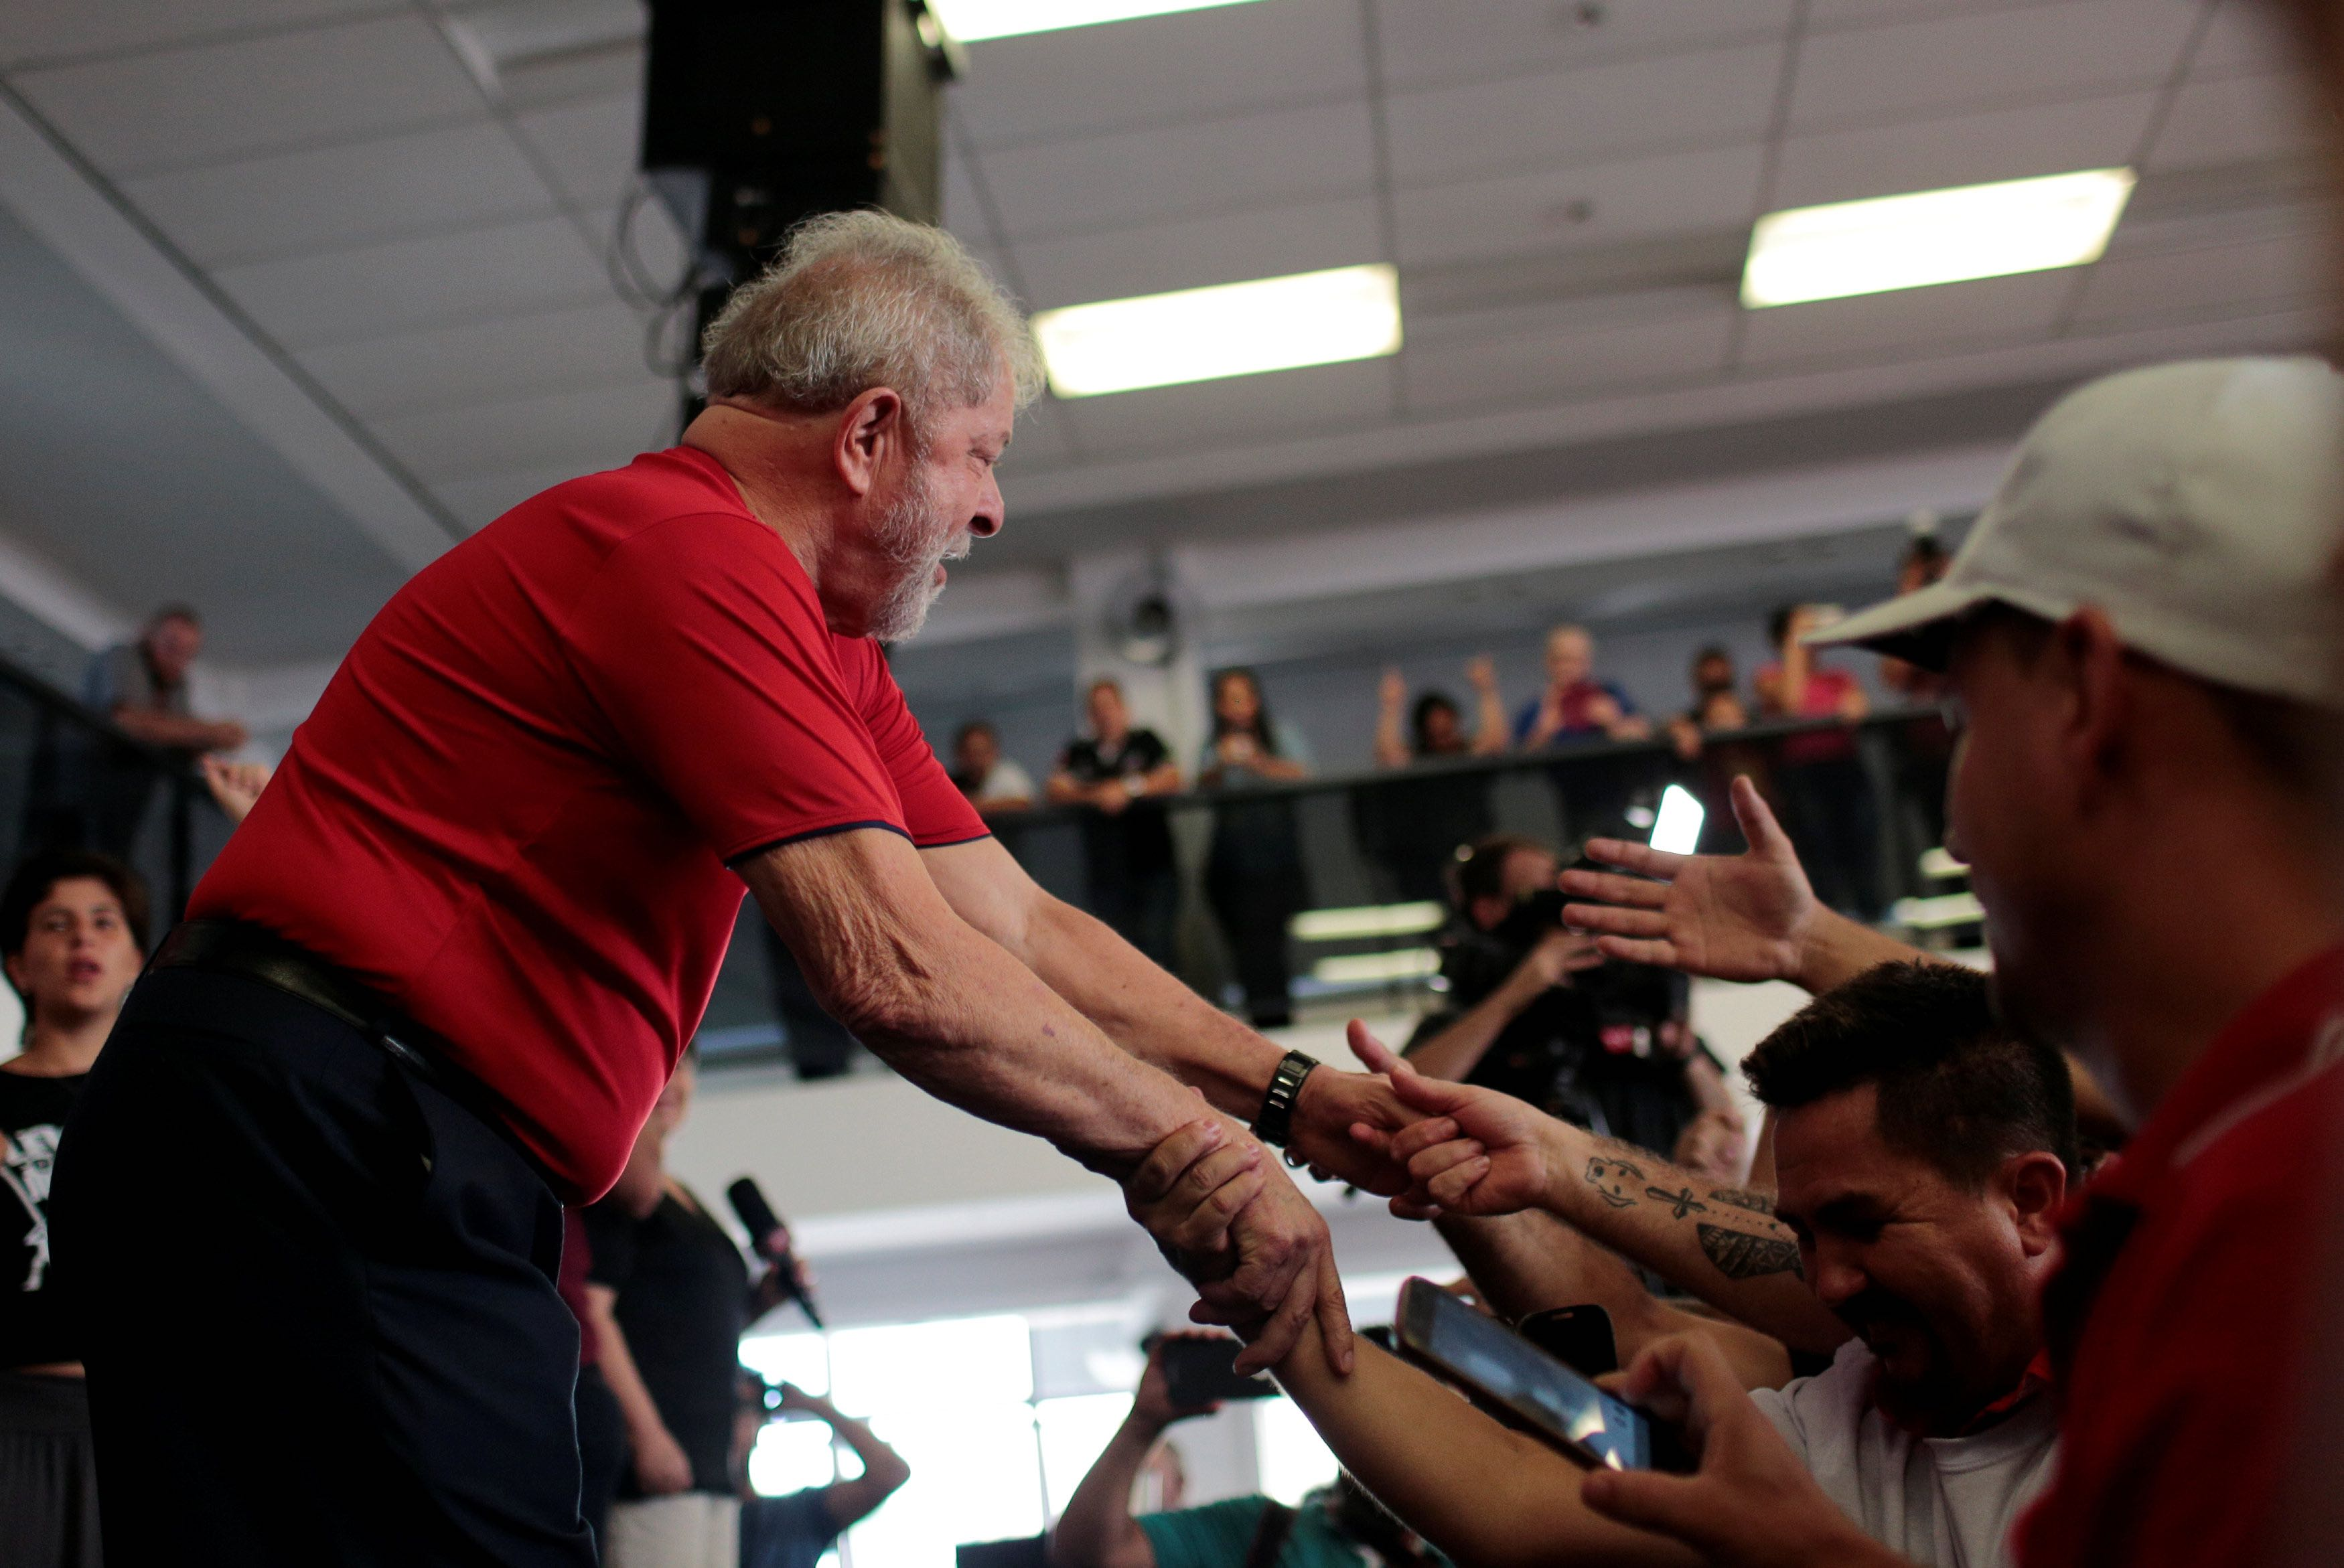 Lula da Silva accepts to be presidential candidate despite prison sentence